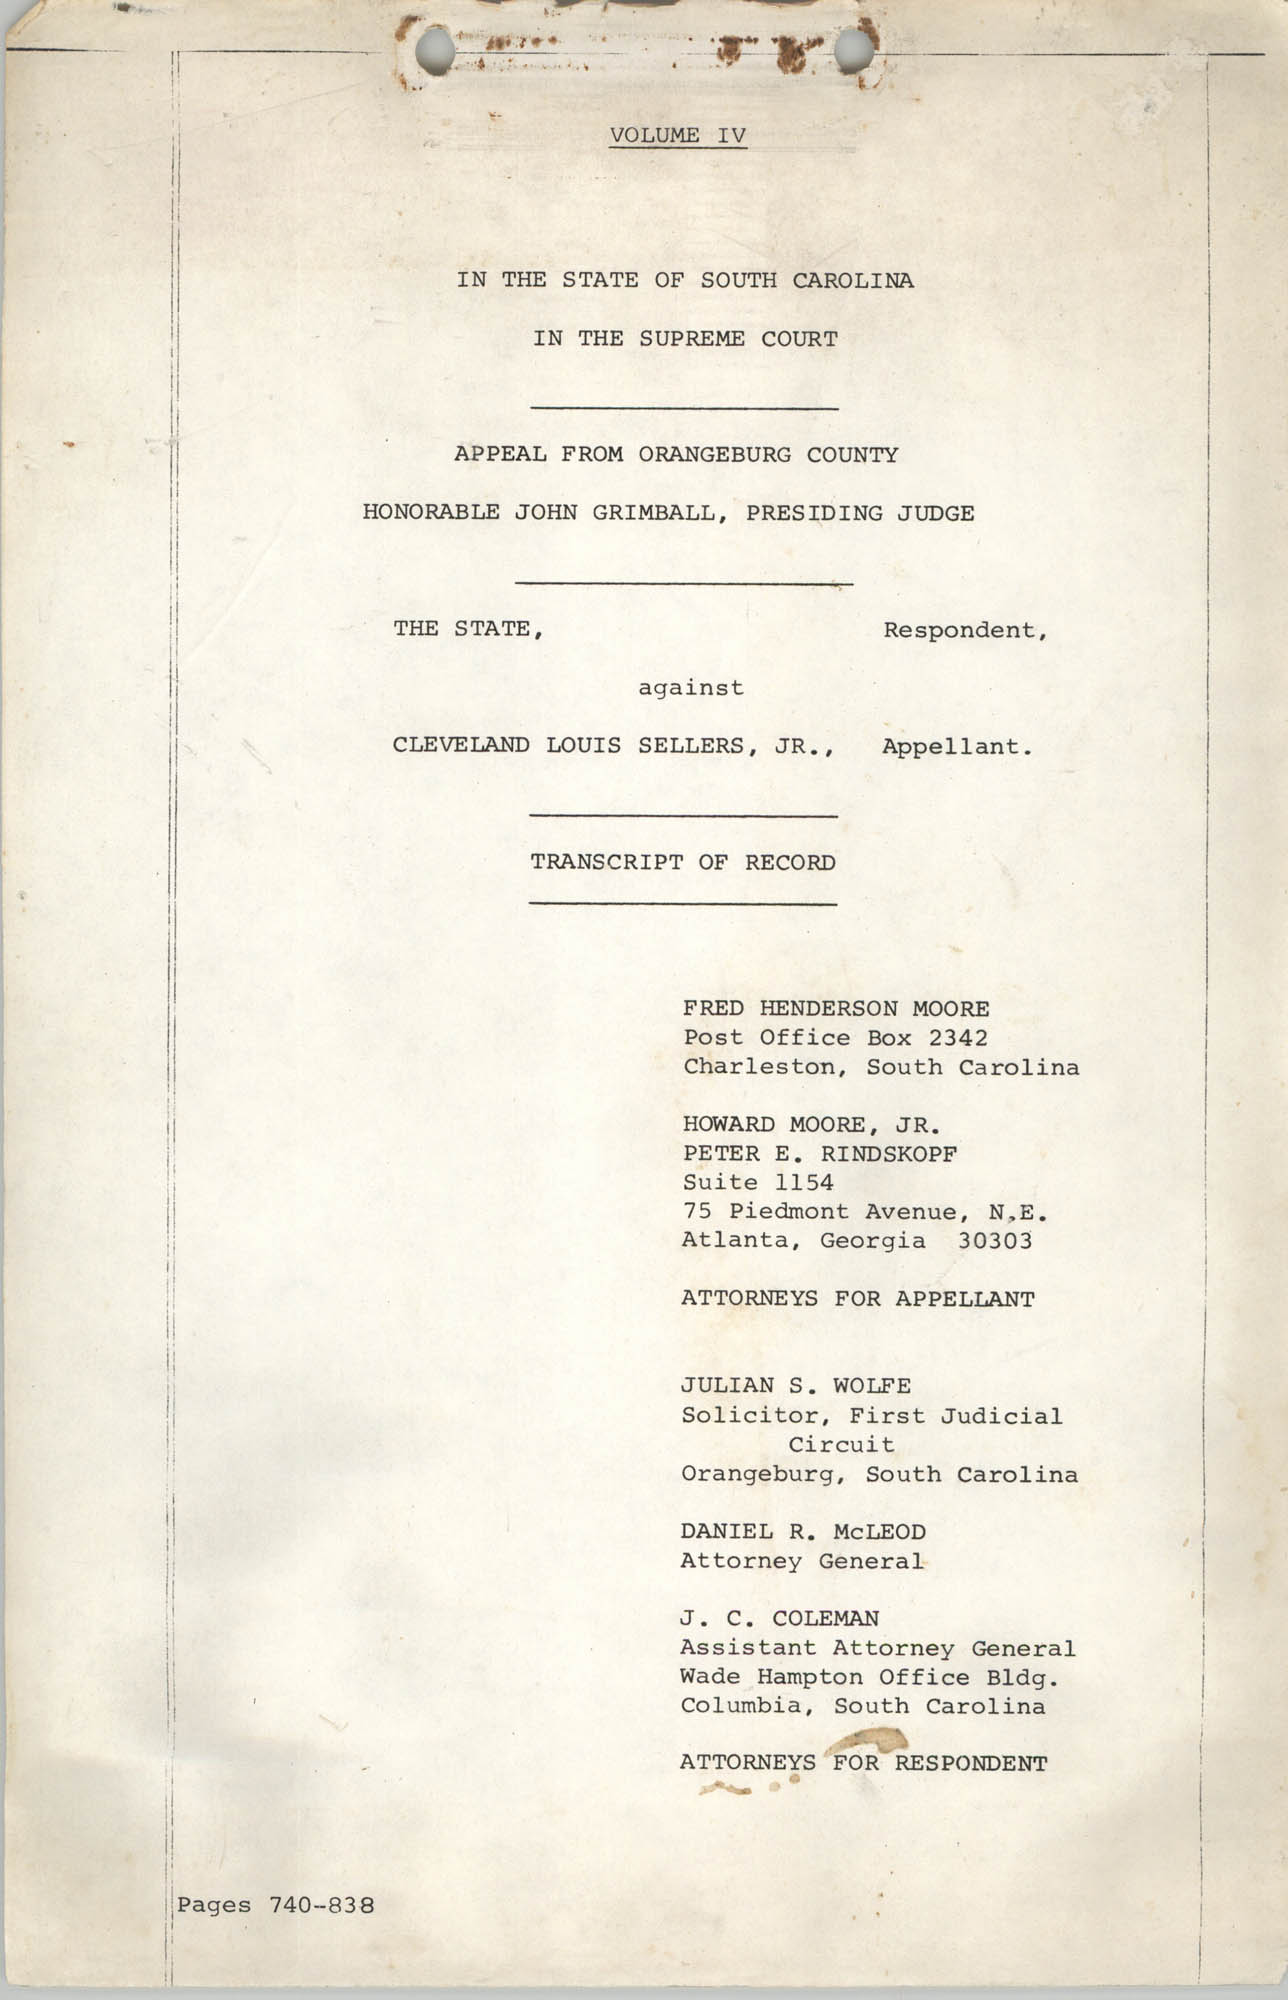 Appeal from Orangeburg County, The State against Cleveland Louis Sellers, Jr., Volume IV, Cover